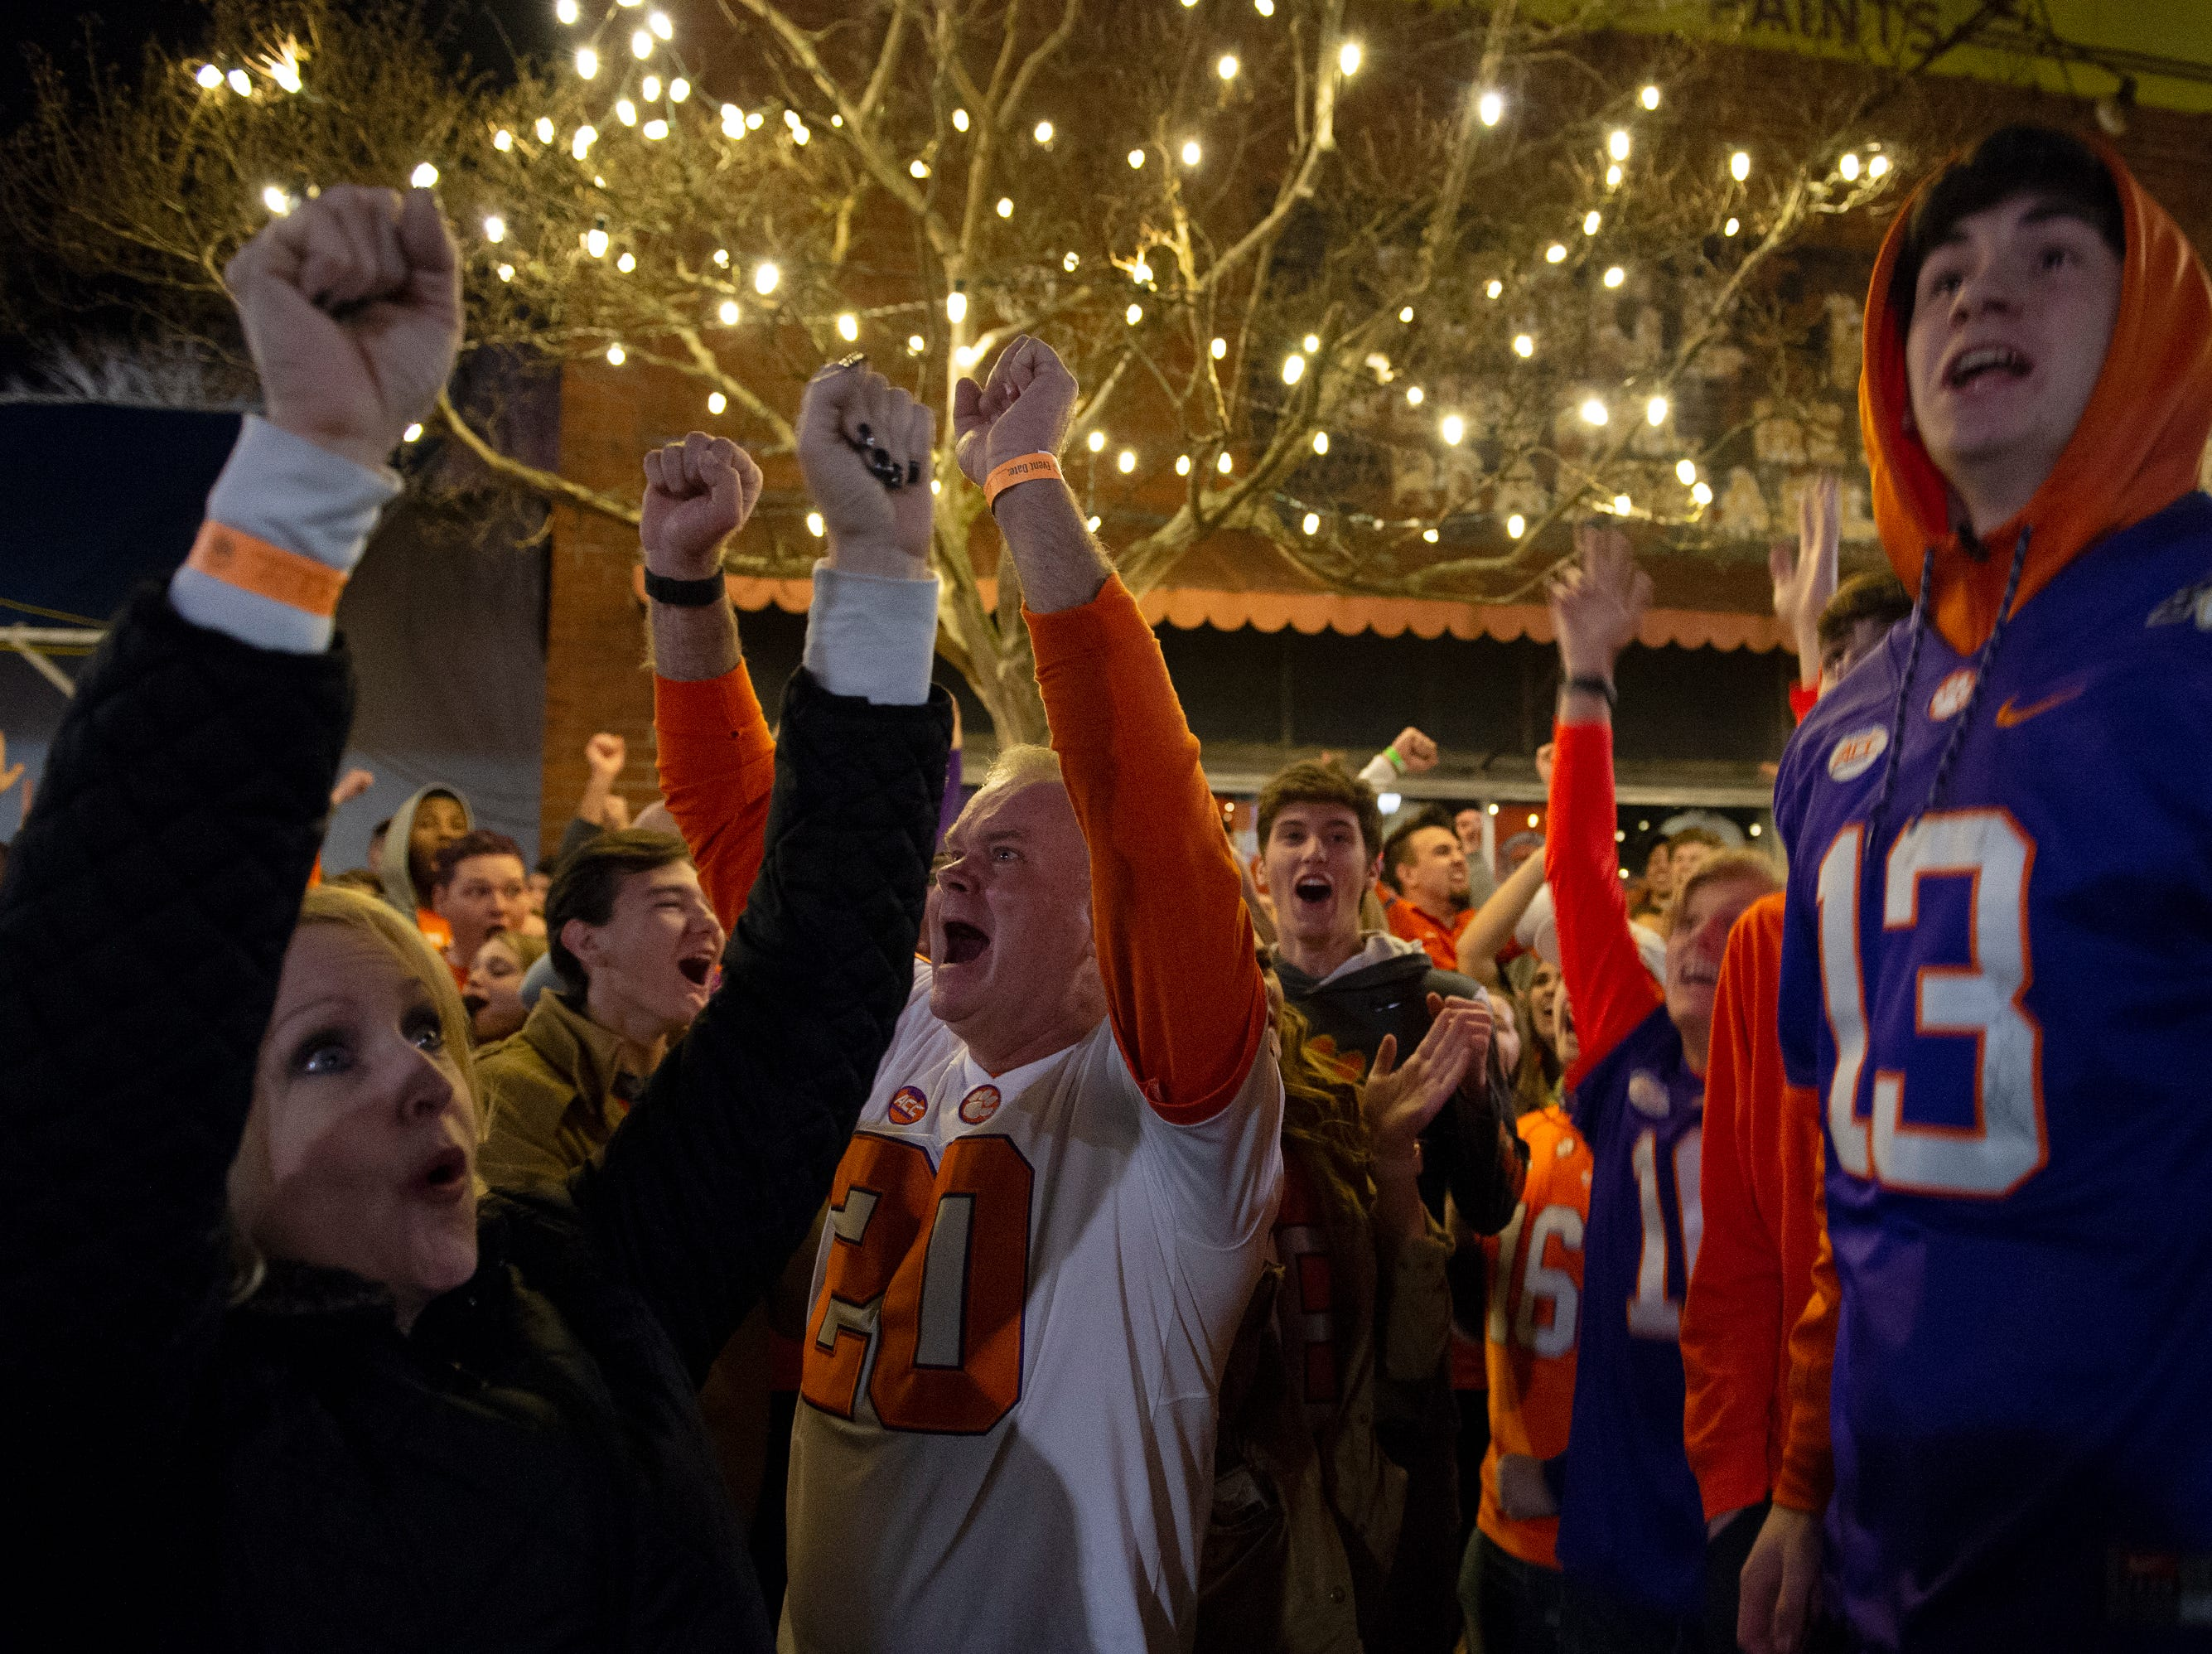 From left, Stephanie Cozzi, Steve Cozzi, and Jake George celebrate a Clemson touchdown while watching Clemson play Alabama in the College Football Playoff National Championship Monday, Jan. 7, 2019. Steve and Stephanie Cozzi travelled from New Jersey to watch the game with their daughter Samantha, a junior. George is a freshman.